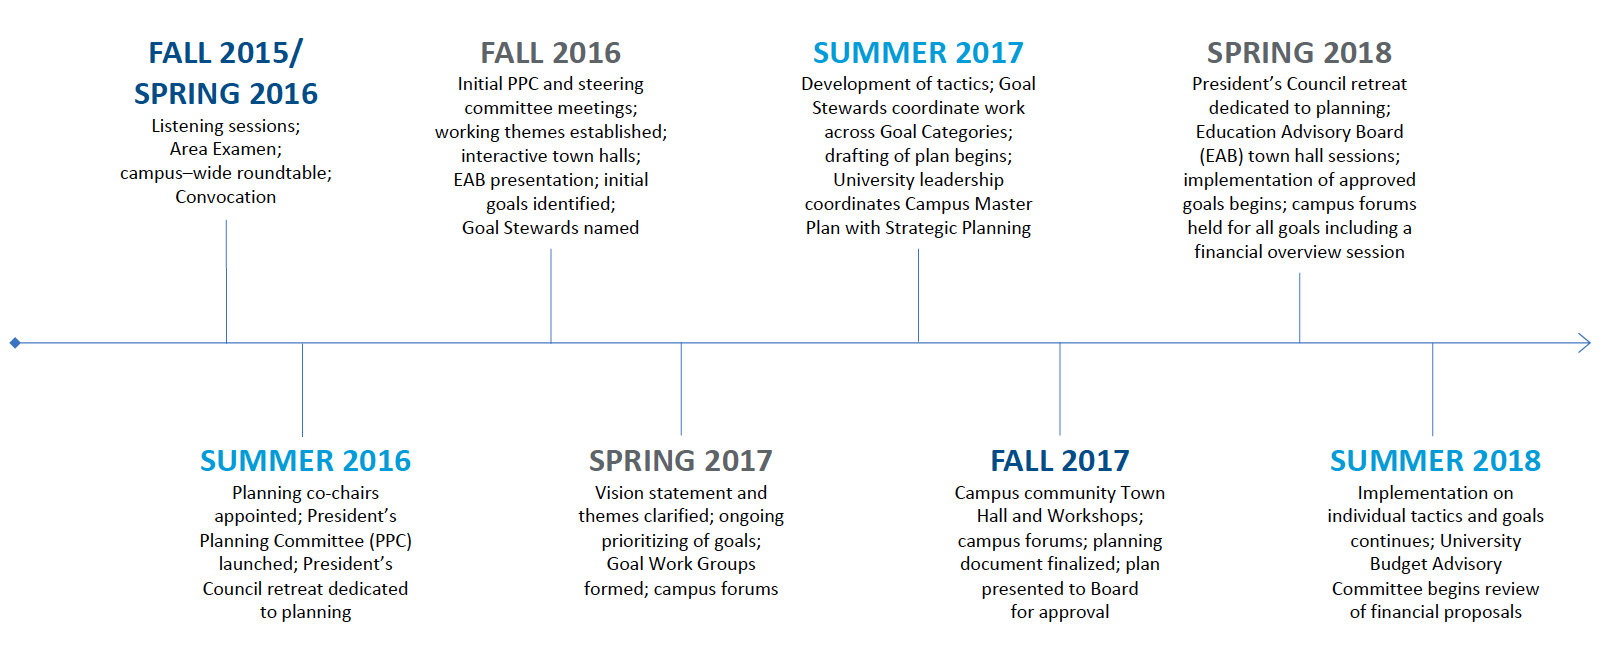 Strategic planning timeline